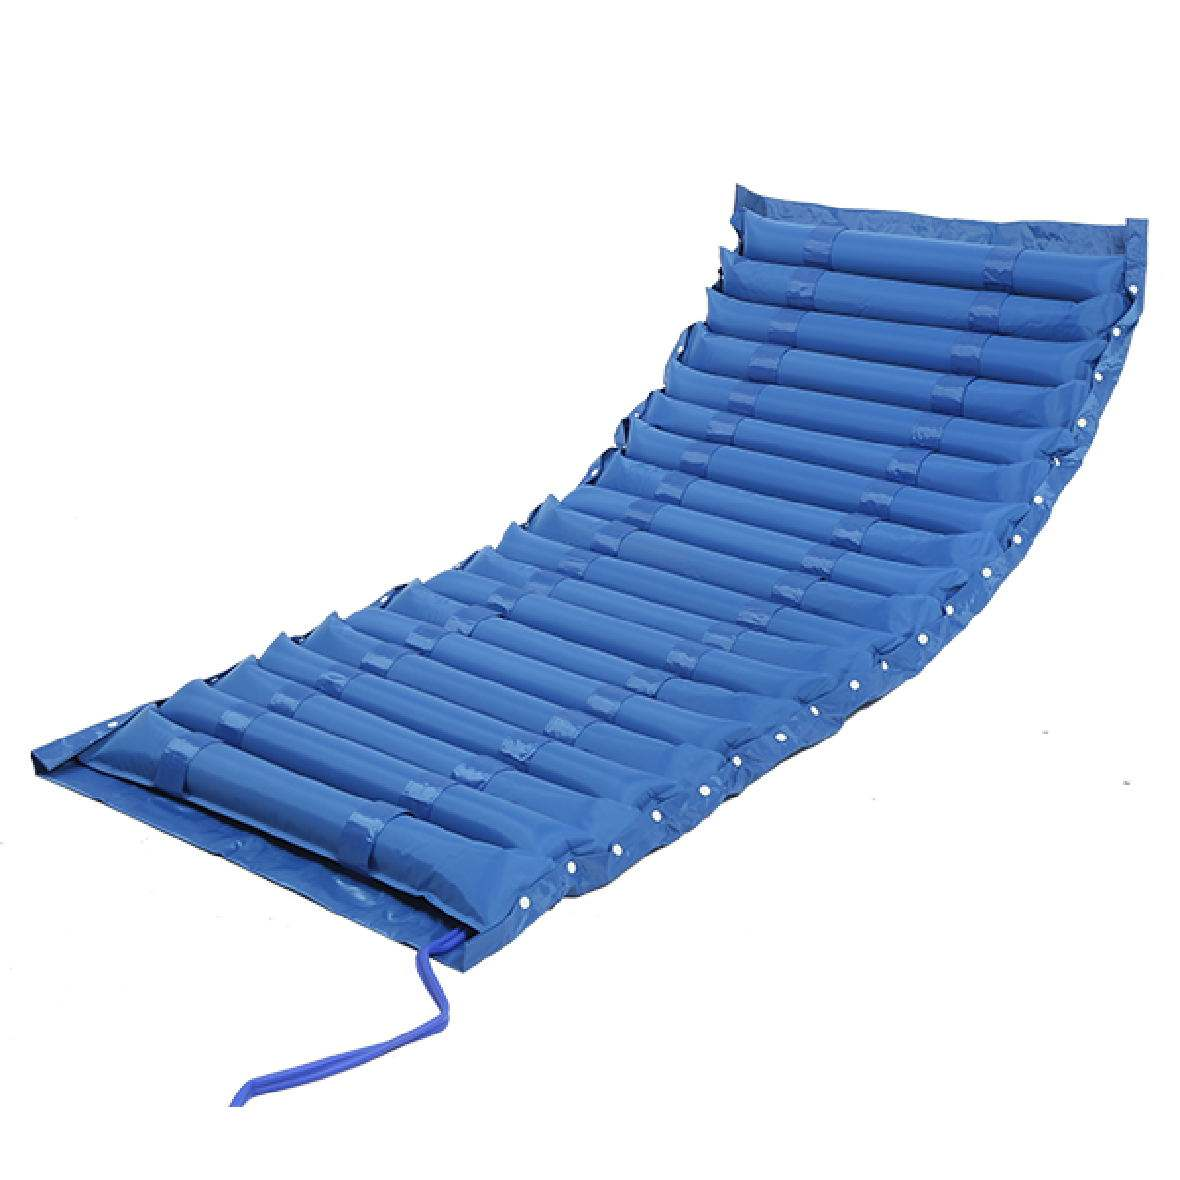 Striped Wave Alternating Inflatable Pressure Cushion with Pump Medical Anti-Decubitus Air Mattress for Hospital Bed Patients